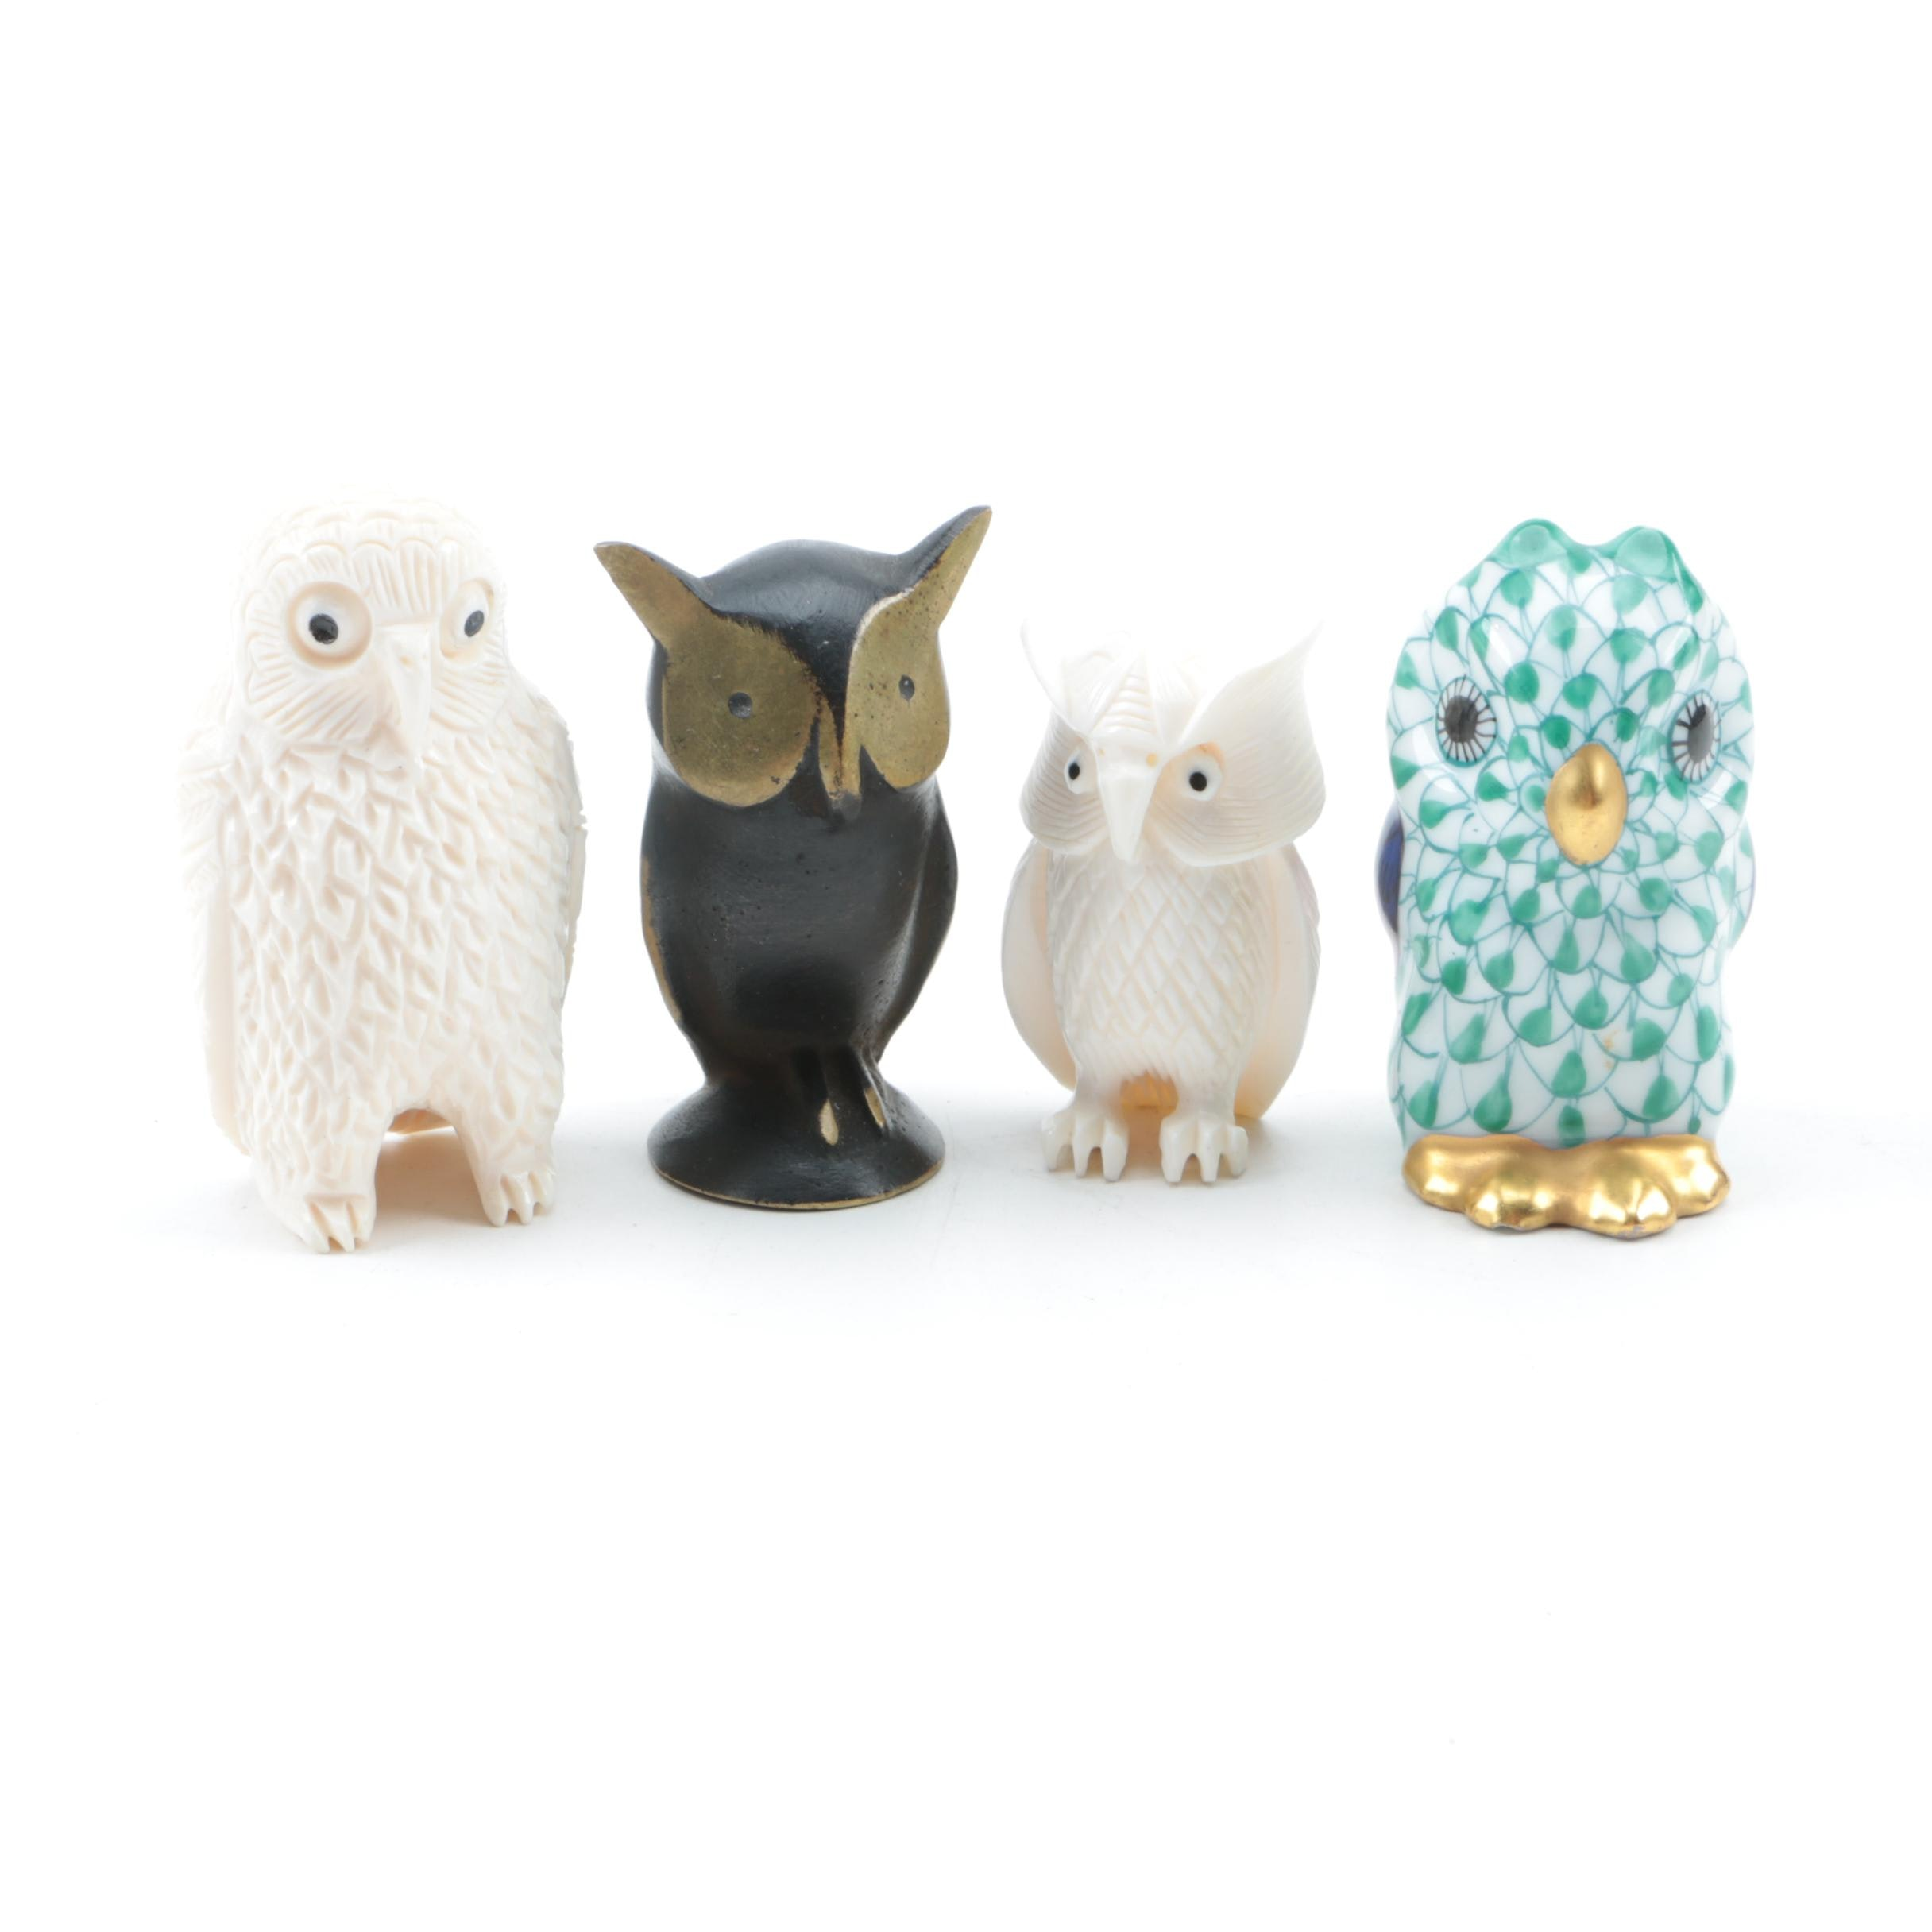 PRIORITY-Owl Figurines featuring Herend Hungary Porcelain